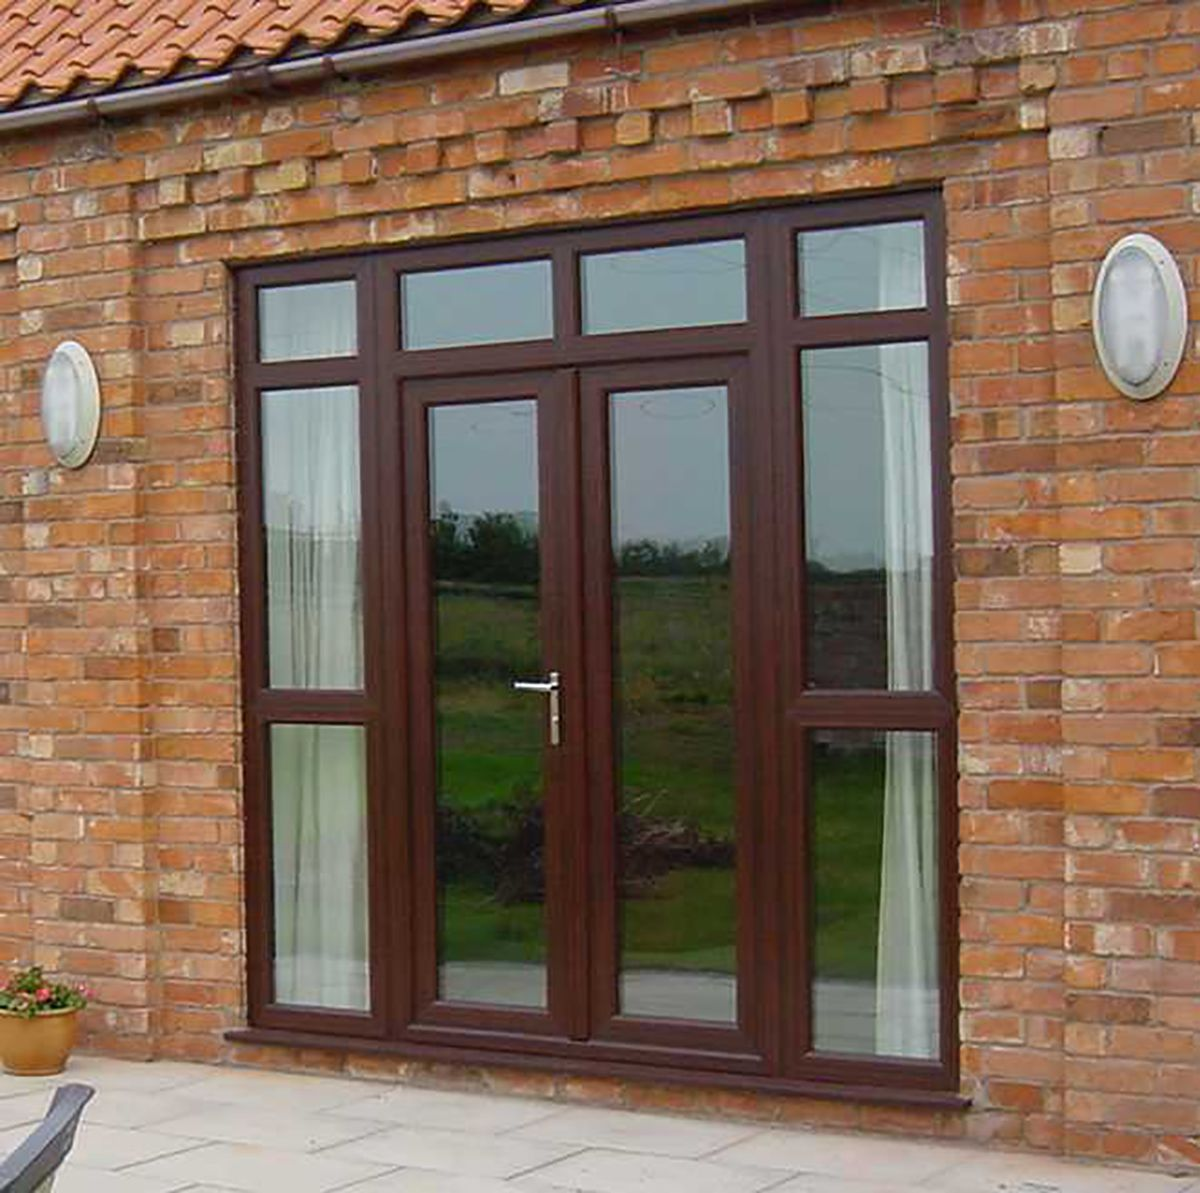 Rehau Upvc Casement Windows From Gfd Homes To Suit Any Home From The Classic Styles To The More Modern We C French Doors Sliding French Doors Upvc Patio Doors